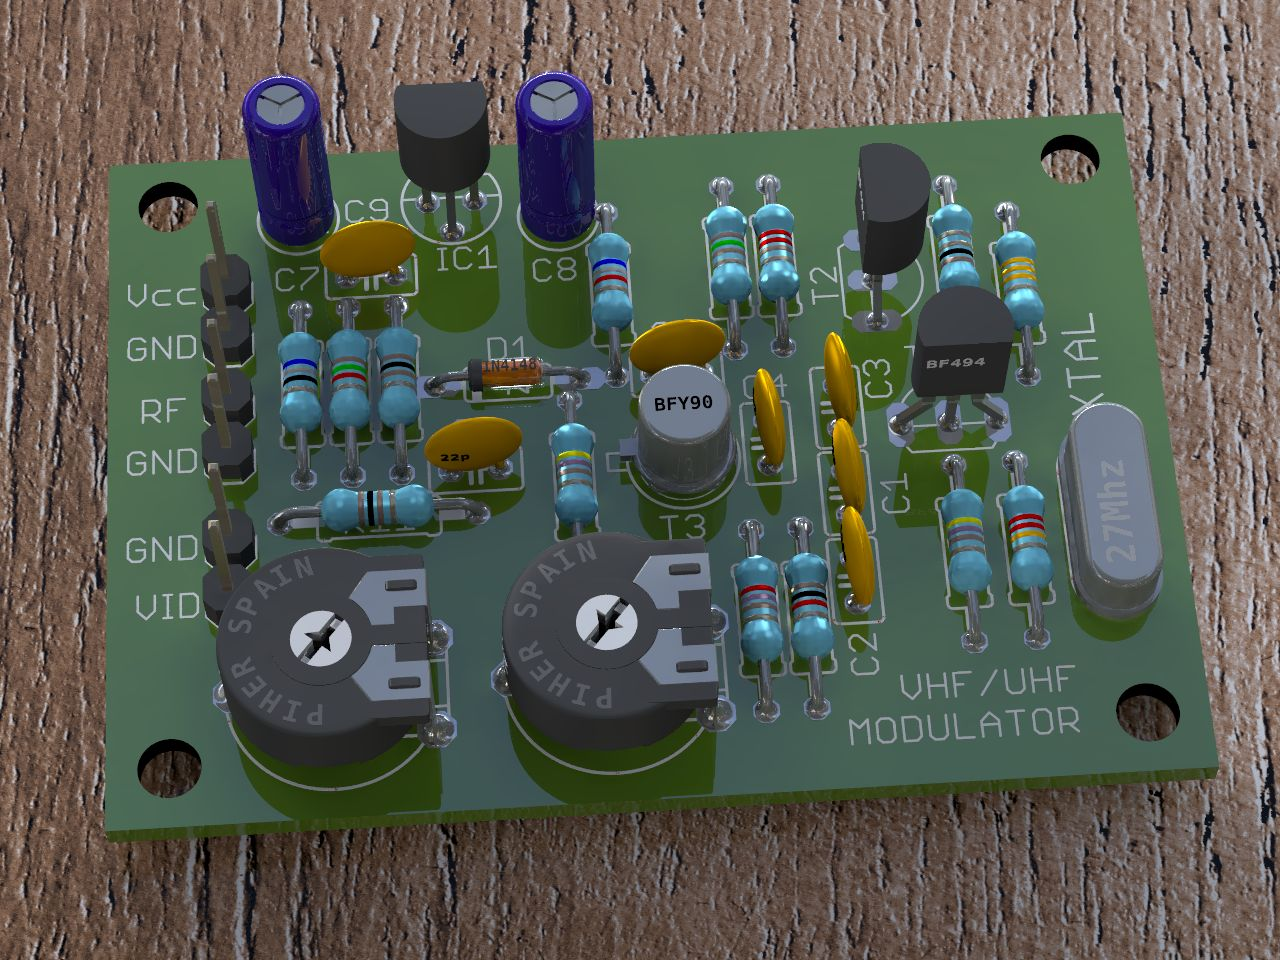 Video] Render 3D images of EAGLE PCB projects · One Transistor